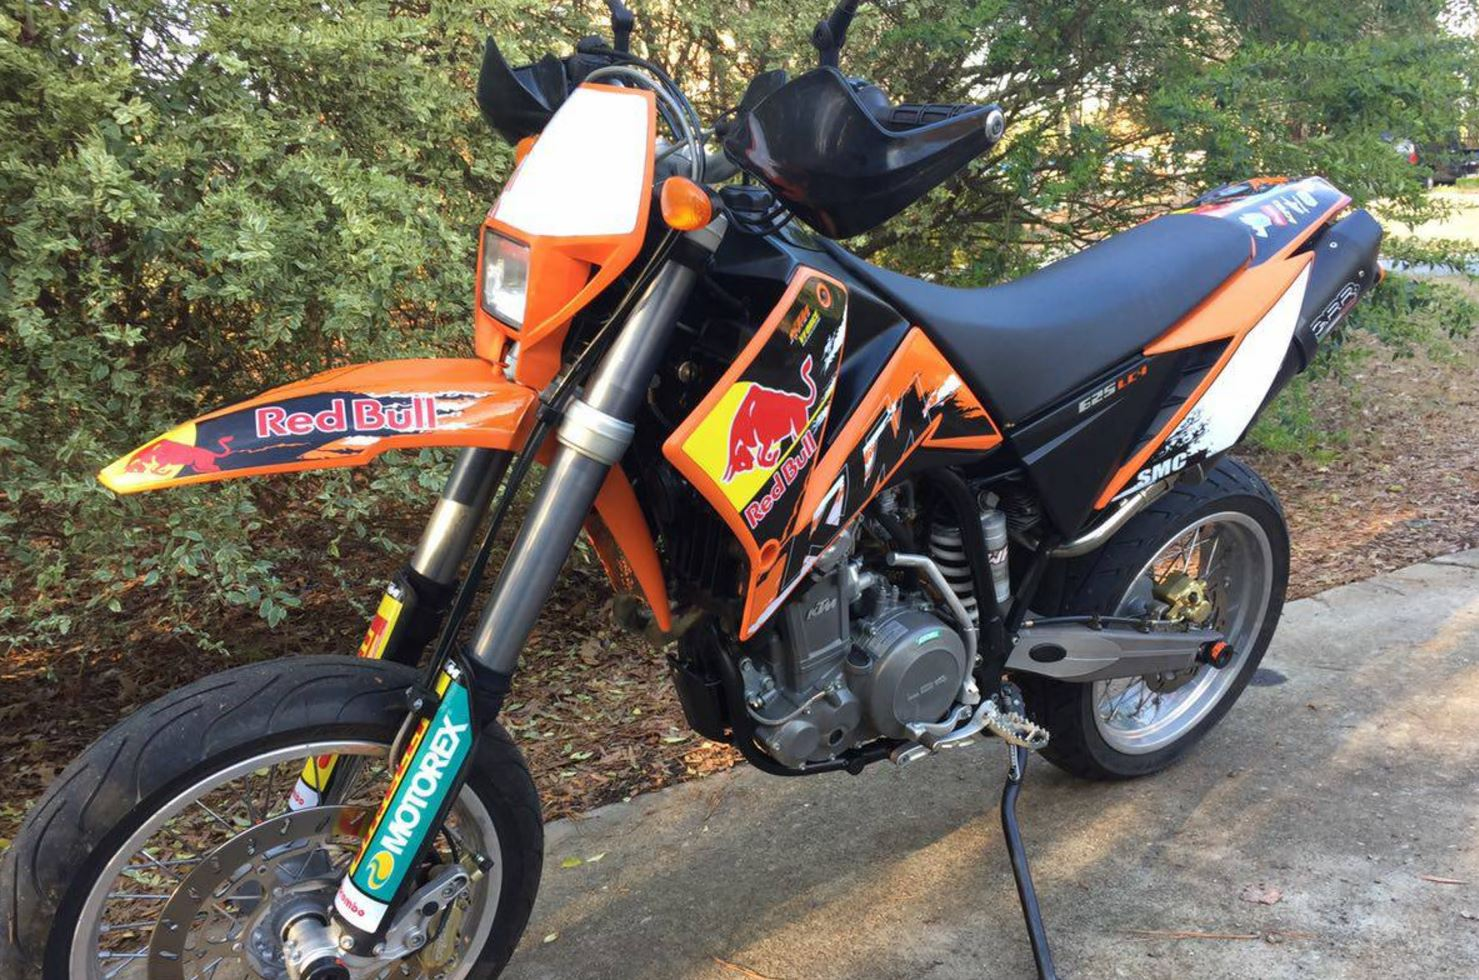 Ktm 625 Smc Service Manual Good Owner Guide Website 690 Wire Diagram Wiring Diagrams Schemes R Workshop